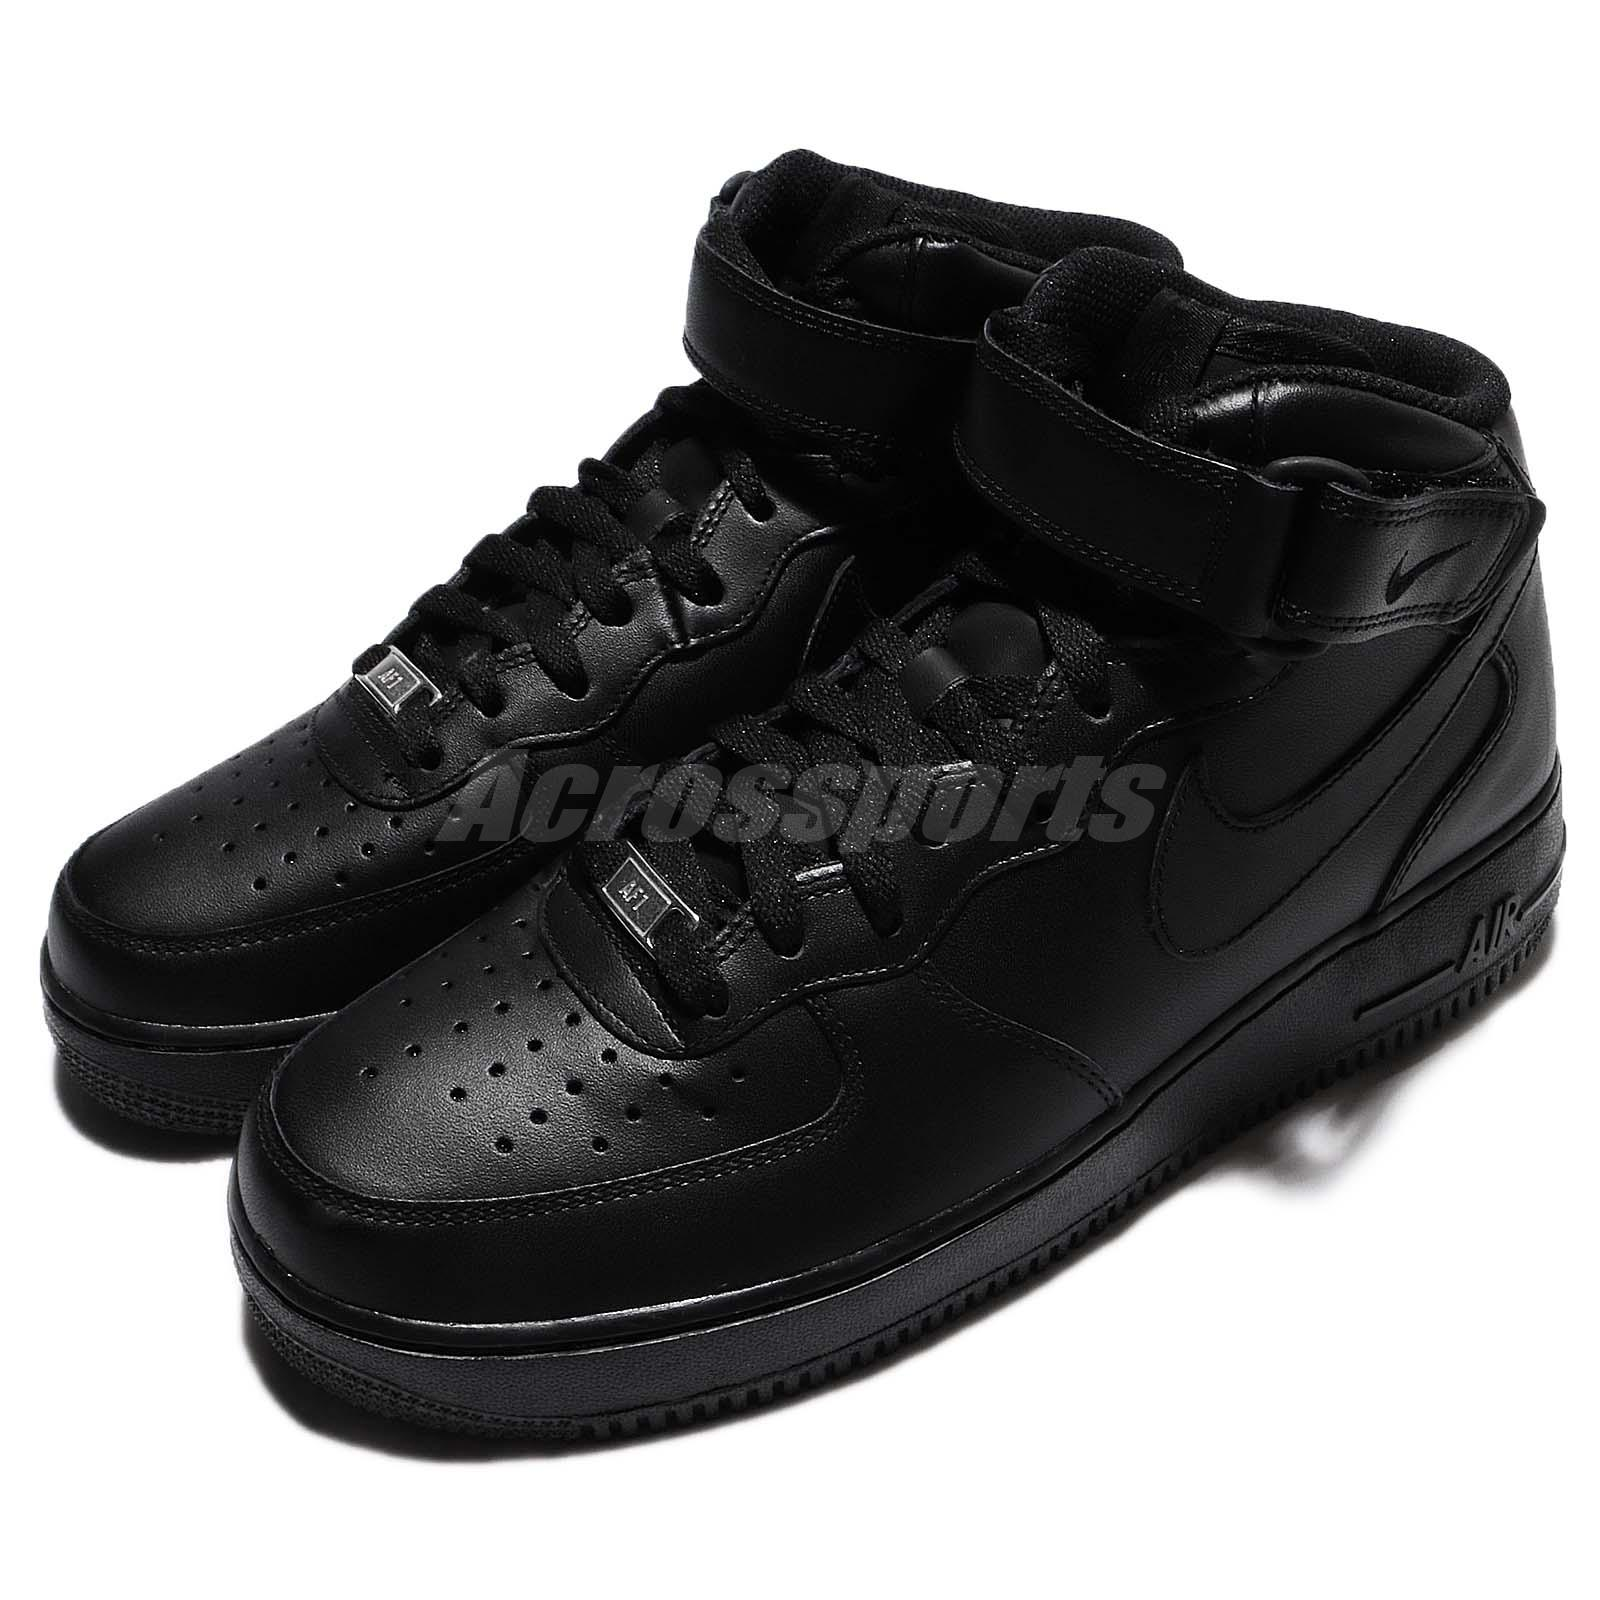 info for 855a6 296eb Details about Nike Air Force 1 Mid 07 Black Mens Classic AF1 Shoes Sneakers  315123-001